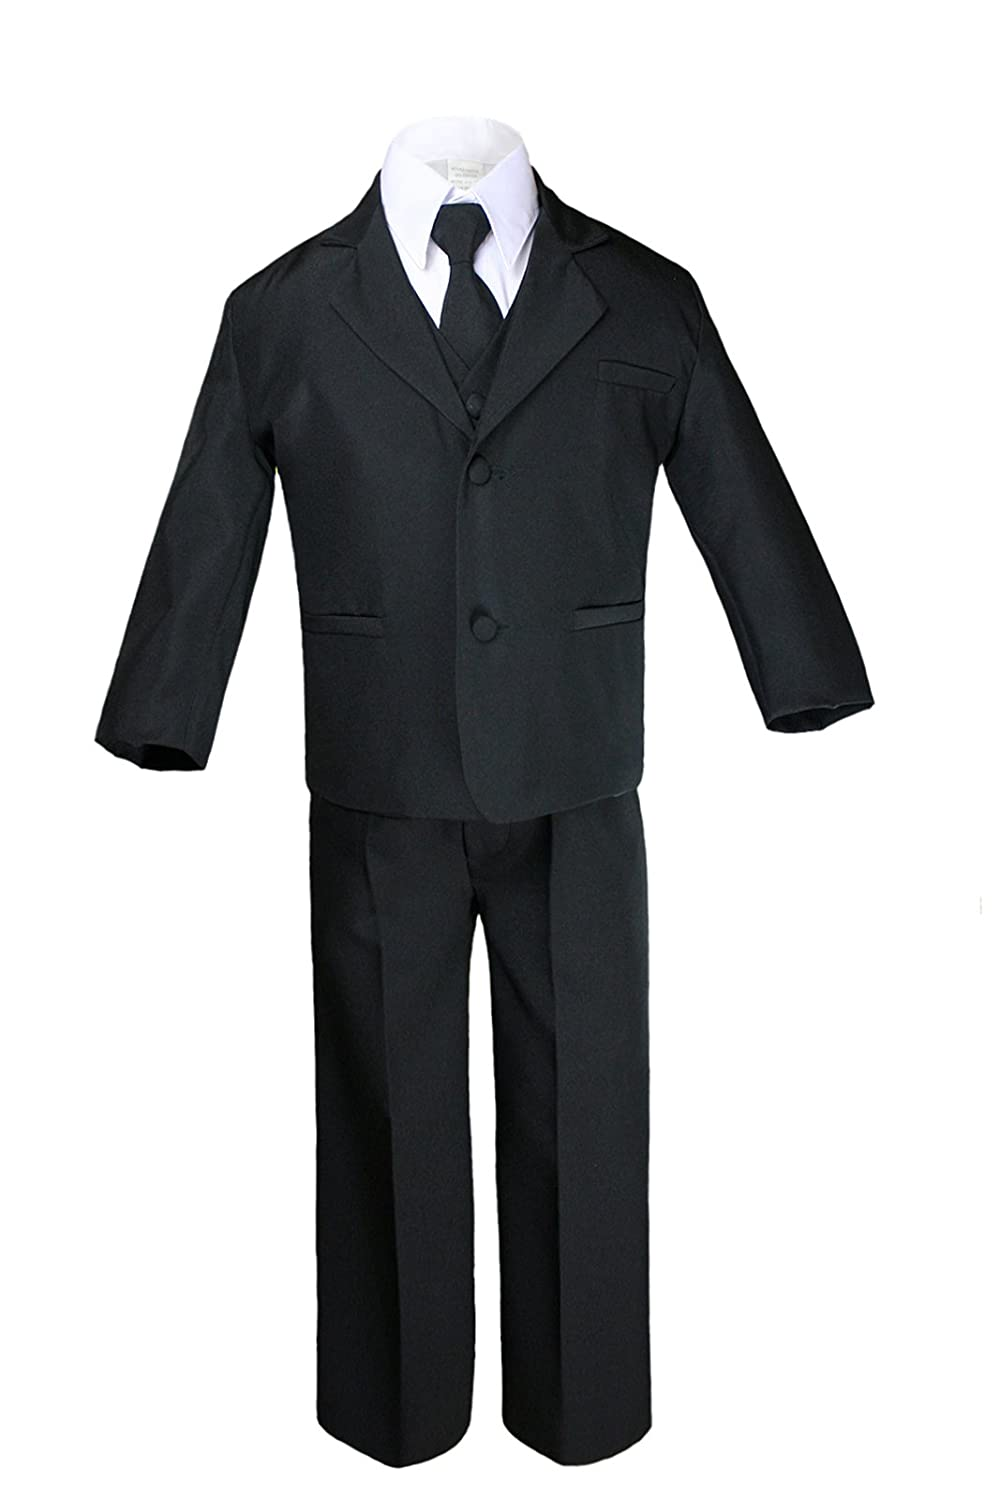 S-20 Unotux 7pc Boy Black Suit with Light Champagne Vest Set from Baby to Teen